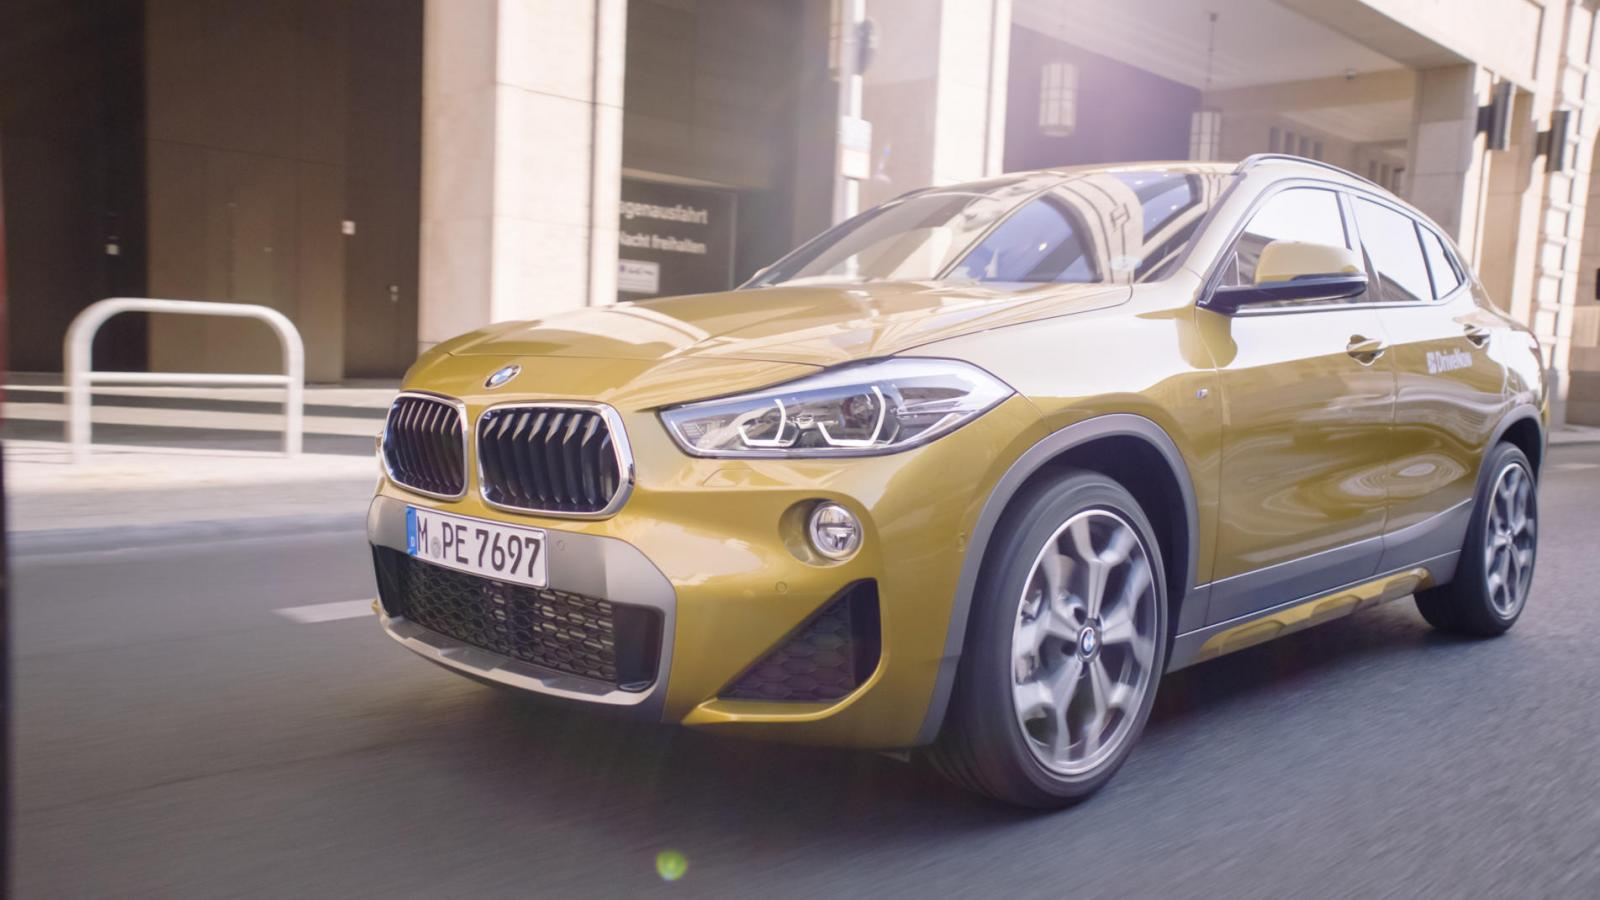 drivenow_berlin_bmw_x2_movie_thumbnail_driving_04_zkjjwg-c_scaleq_75w_1903